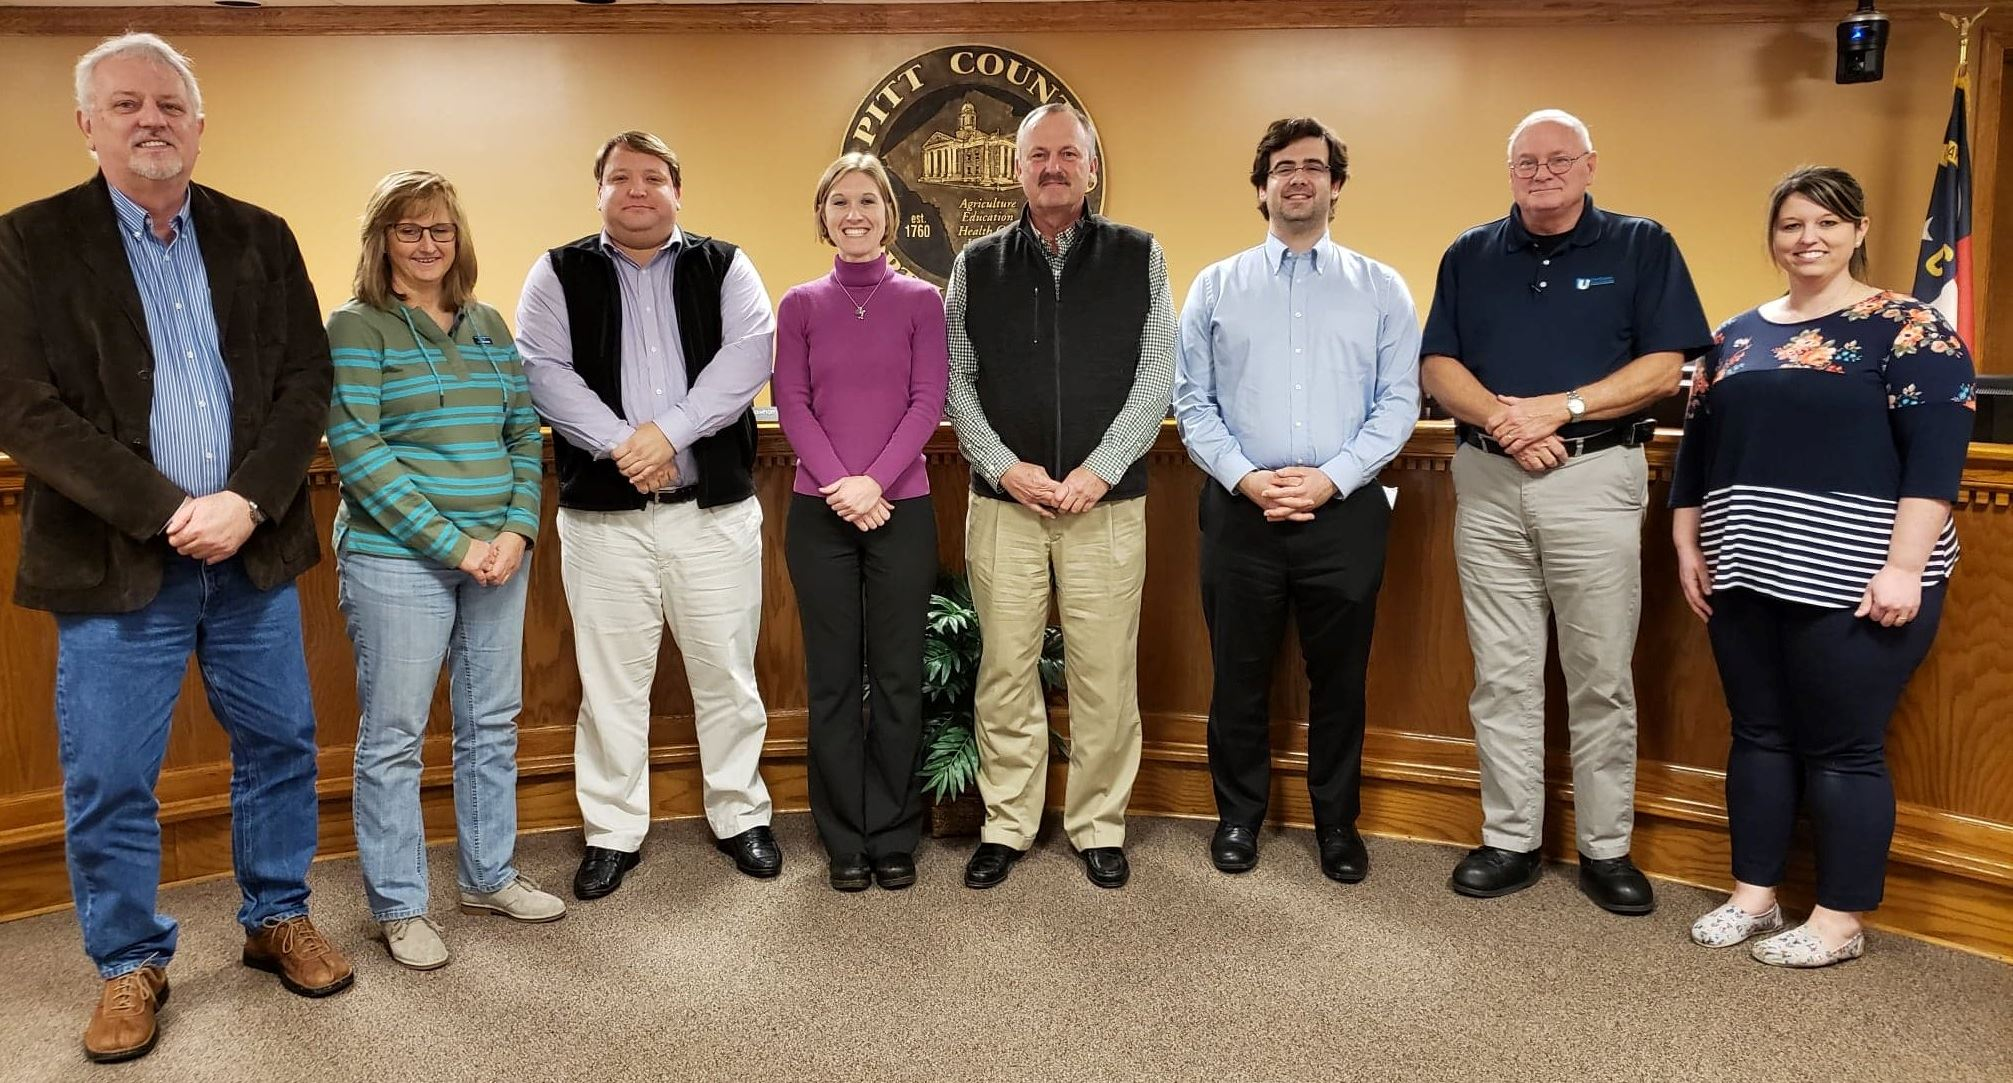 Animal Services Advisory Board Members on Jan. 23 2019